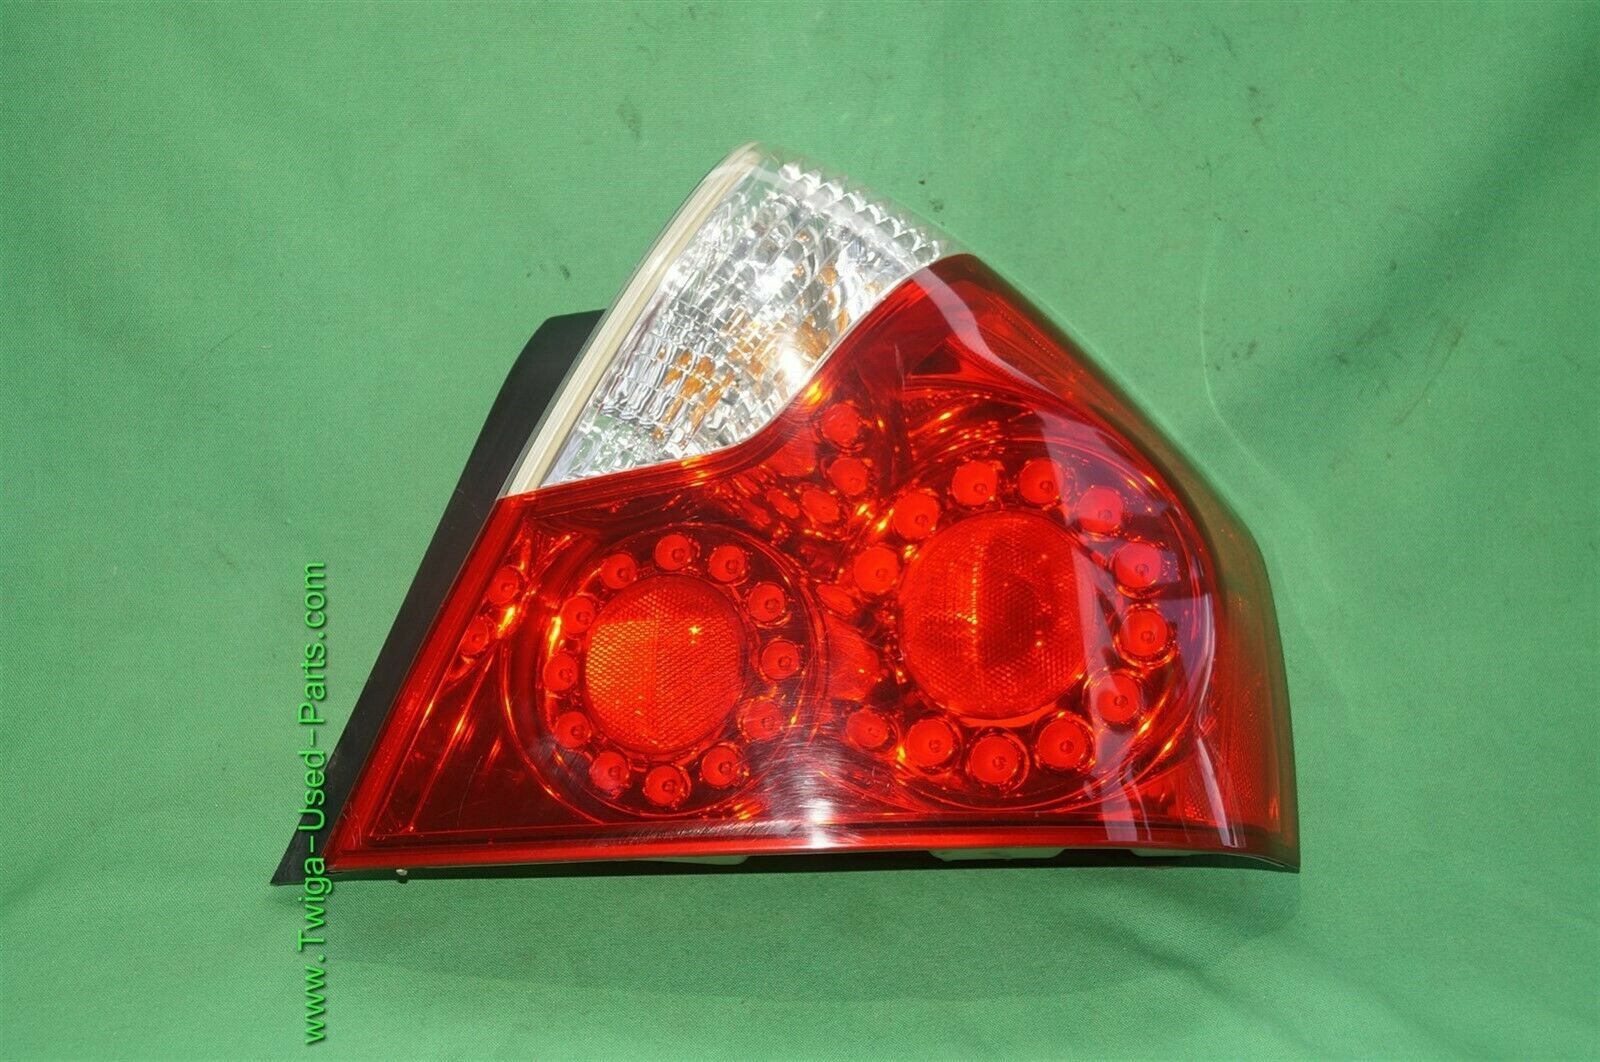 06-07 Infiniti M35 M45 LED Taillight Tail Lamp Passenger Right Side - RH